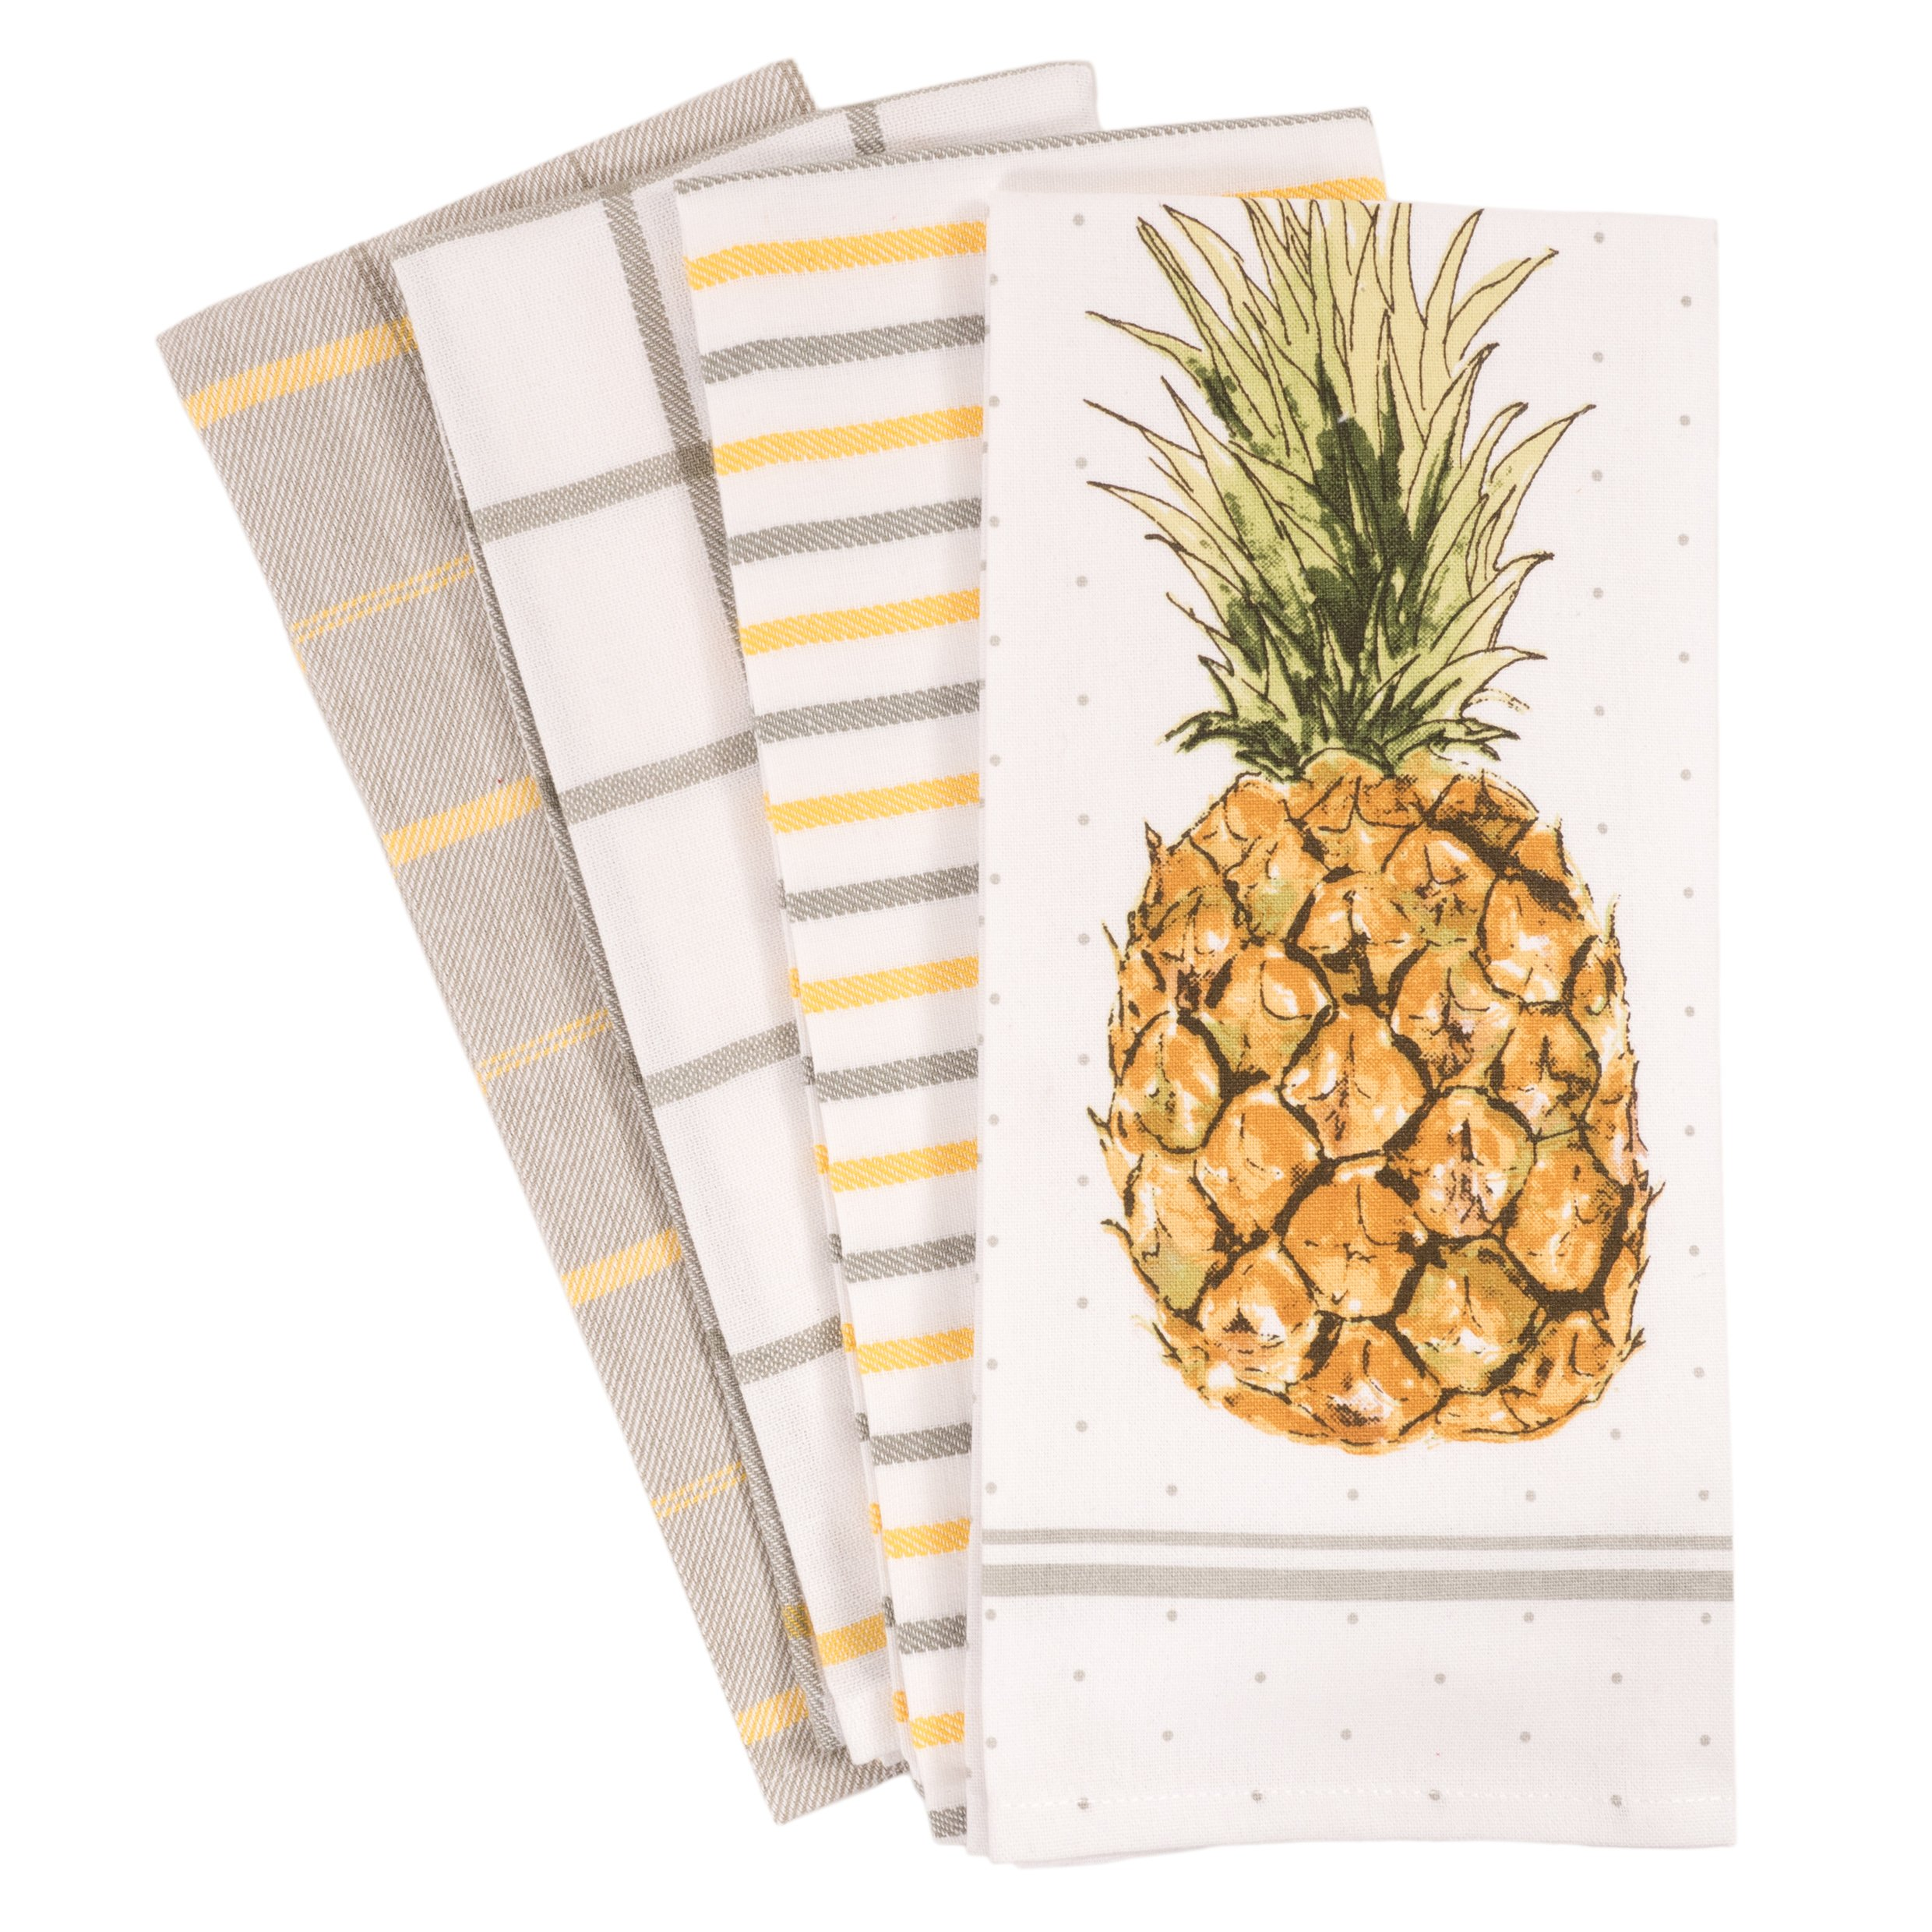 Pantry Pineapple Kitchen Dish Towel Set of 4, 100-Percent Cotton, 18 x 28-inch